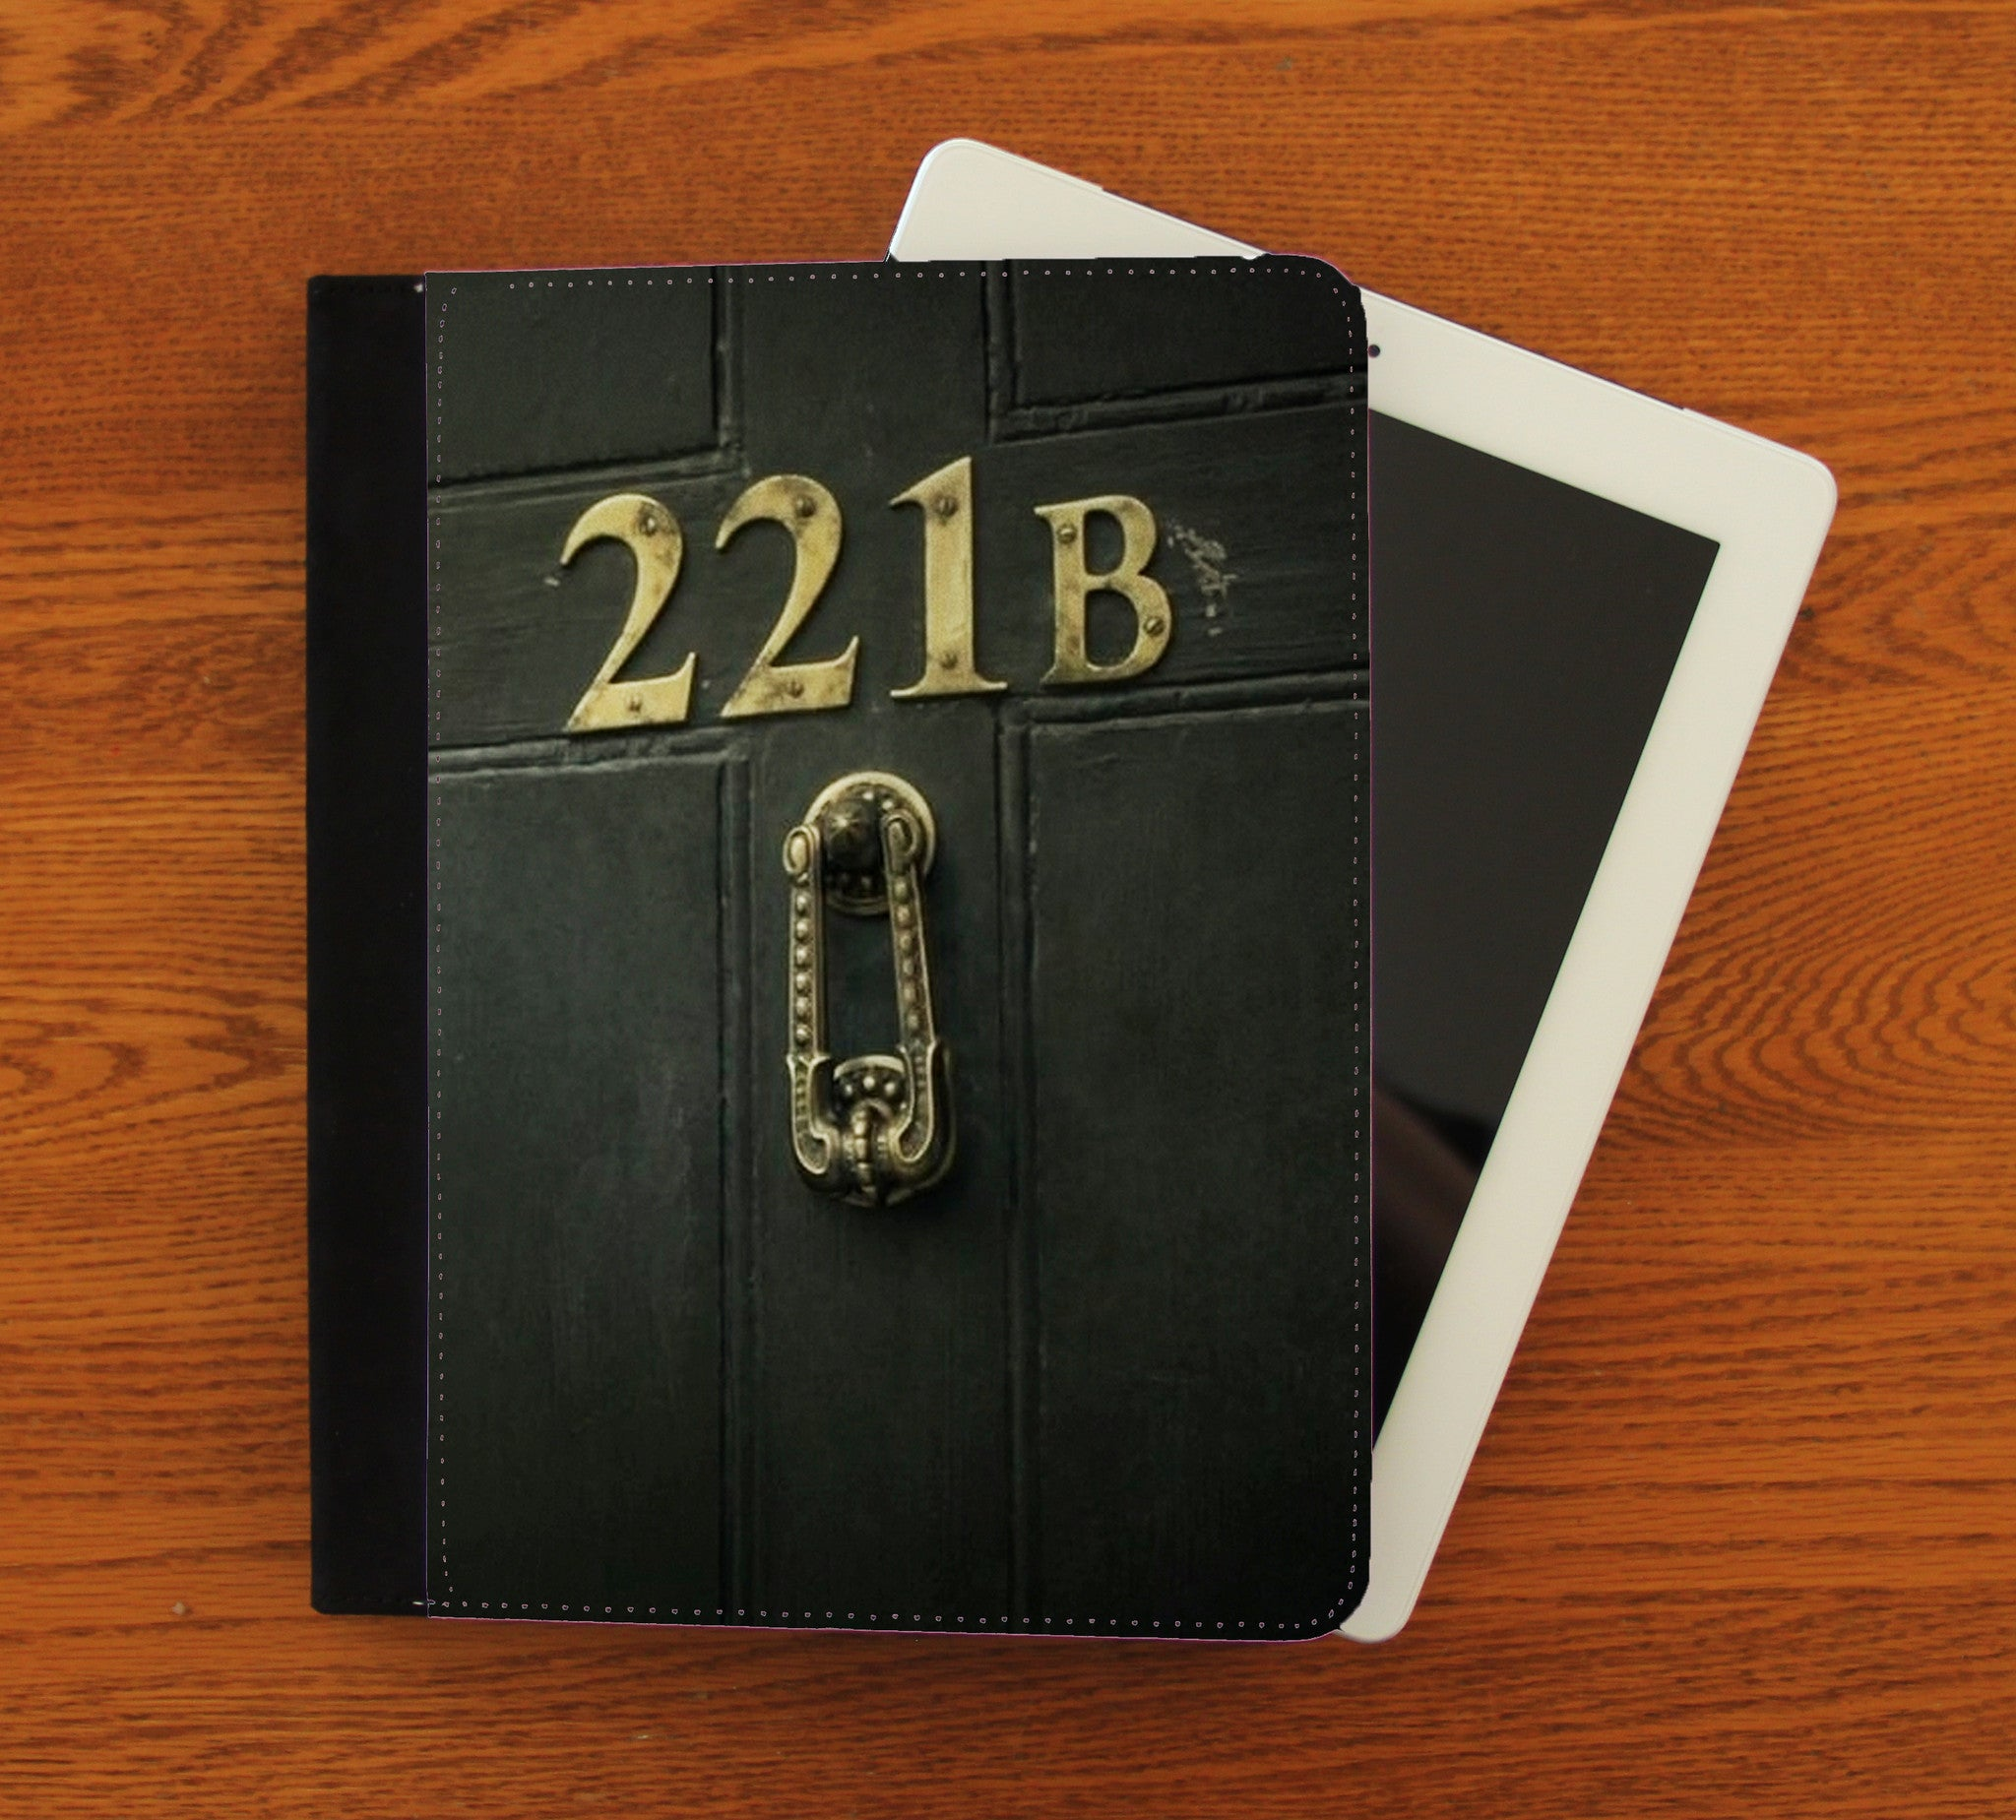 221b Door iPad 2,3,4, iPad Mini, Canvas and Suede Protection Case - Consulting Fangeeks - 1